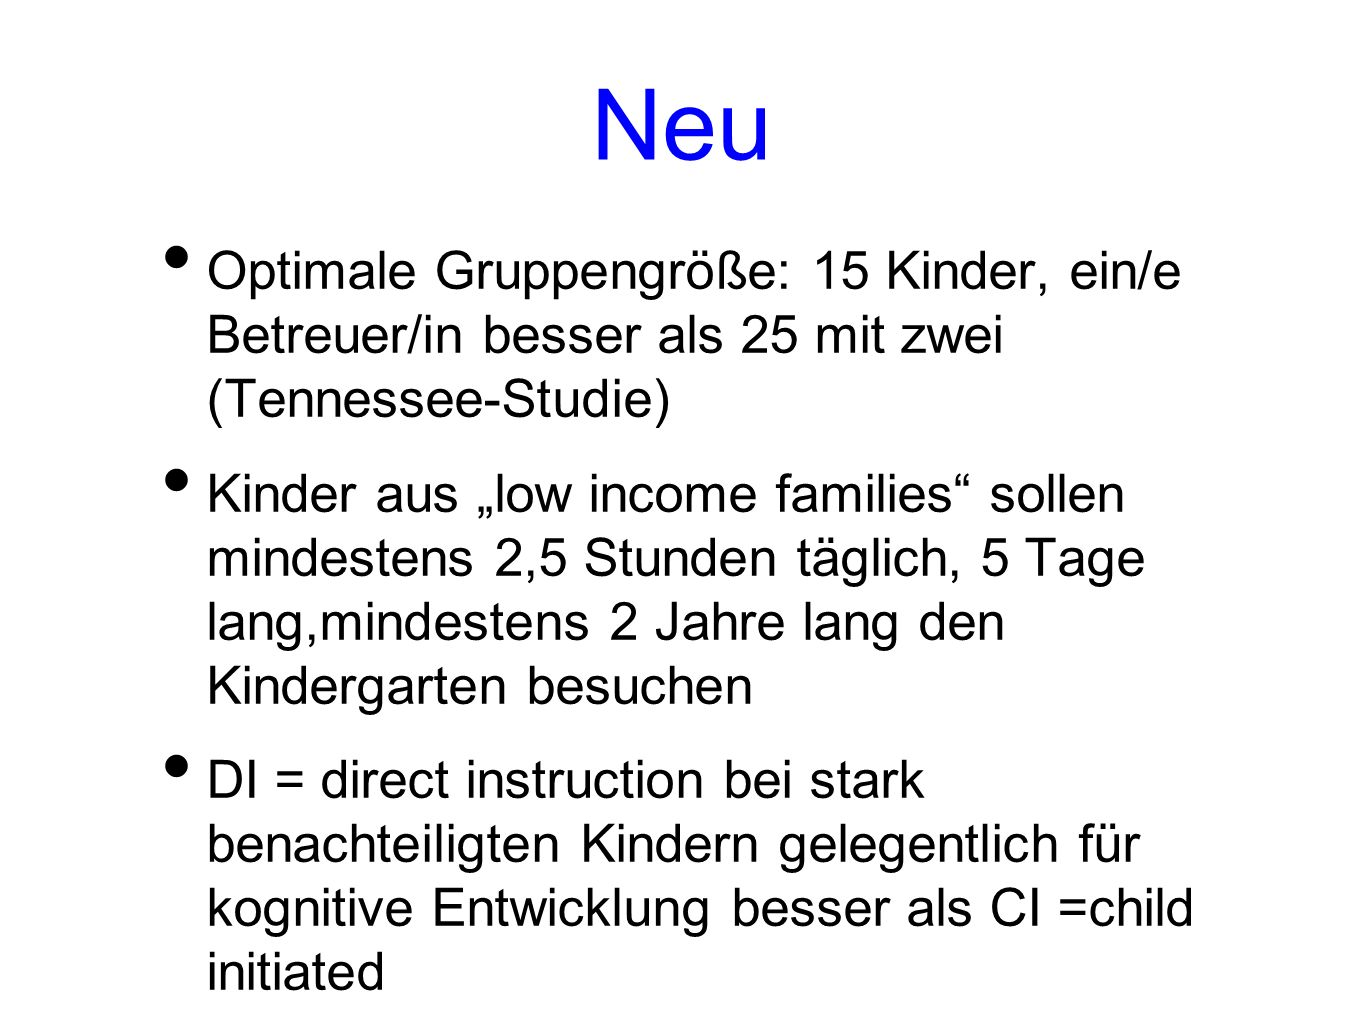 Qualitätsstandards (Minimal) National Association for the Education of Young Children AlterErzieherIn : Kind 0 - 11:3 1 - 21:5 2 - 31:6 3 - 41:8 4 - 51:10 5 - 61:15